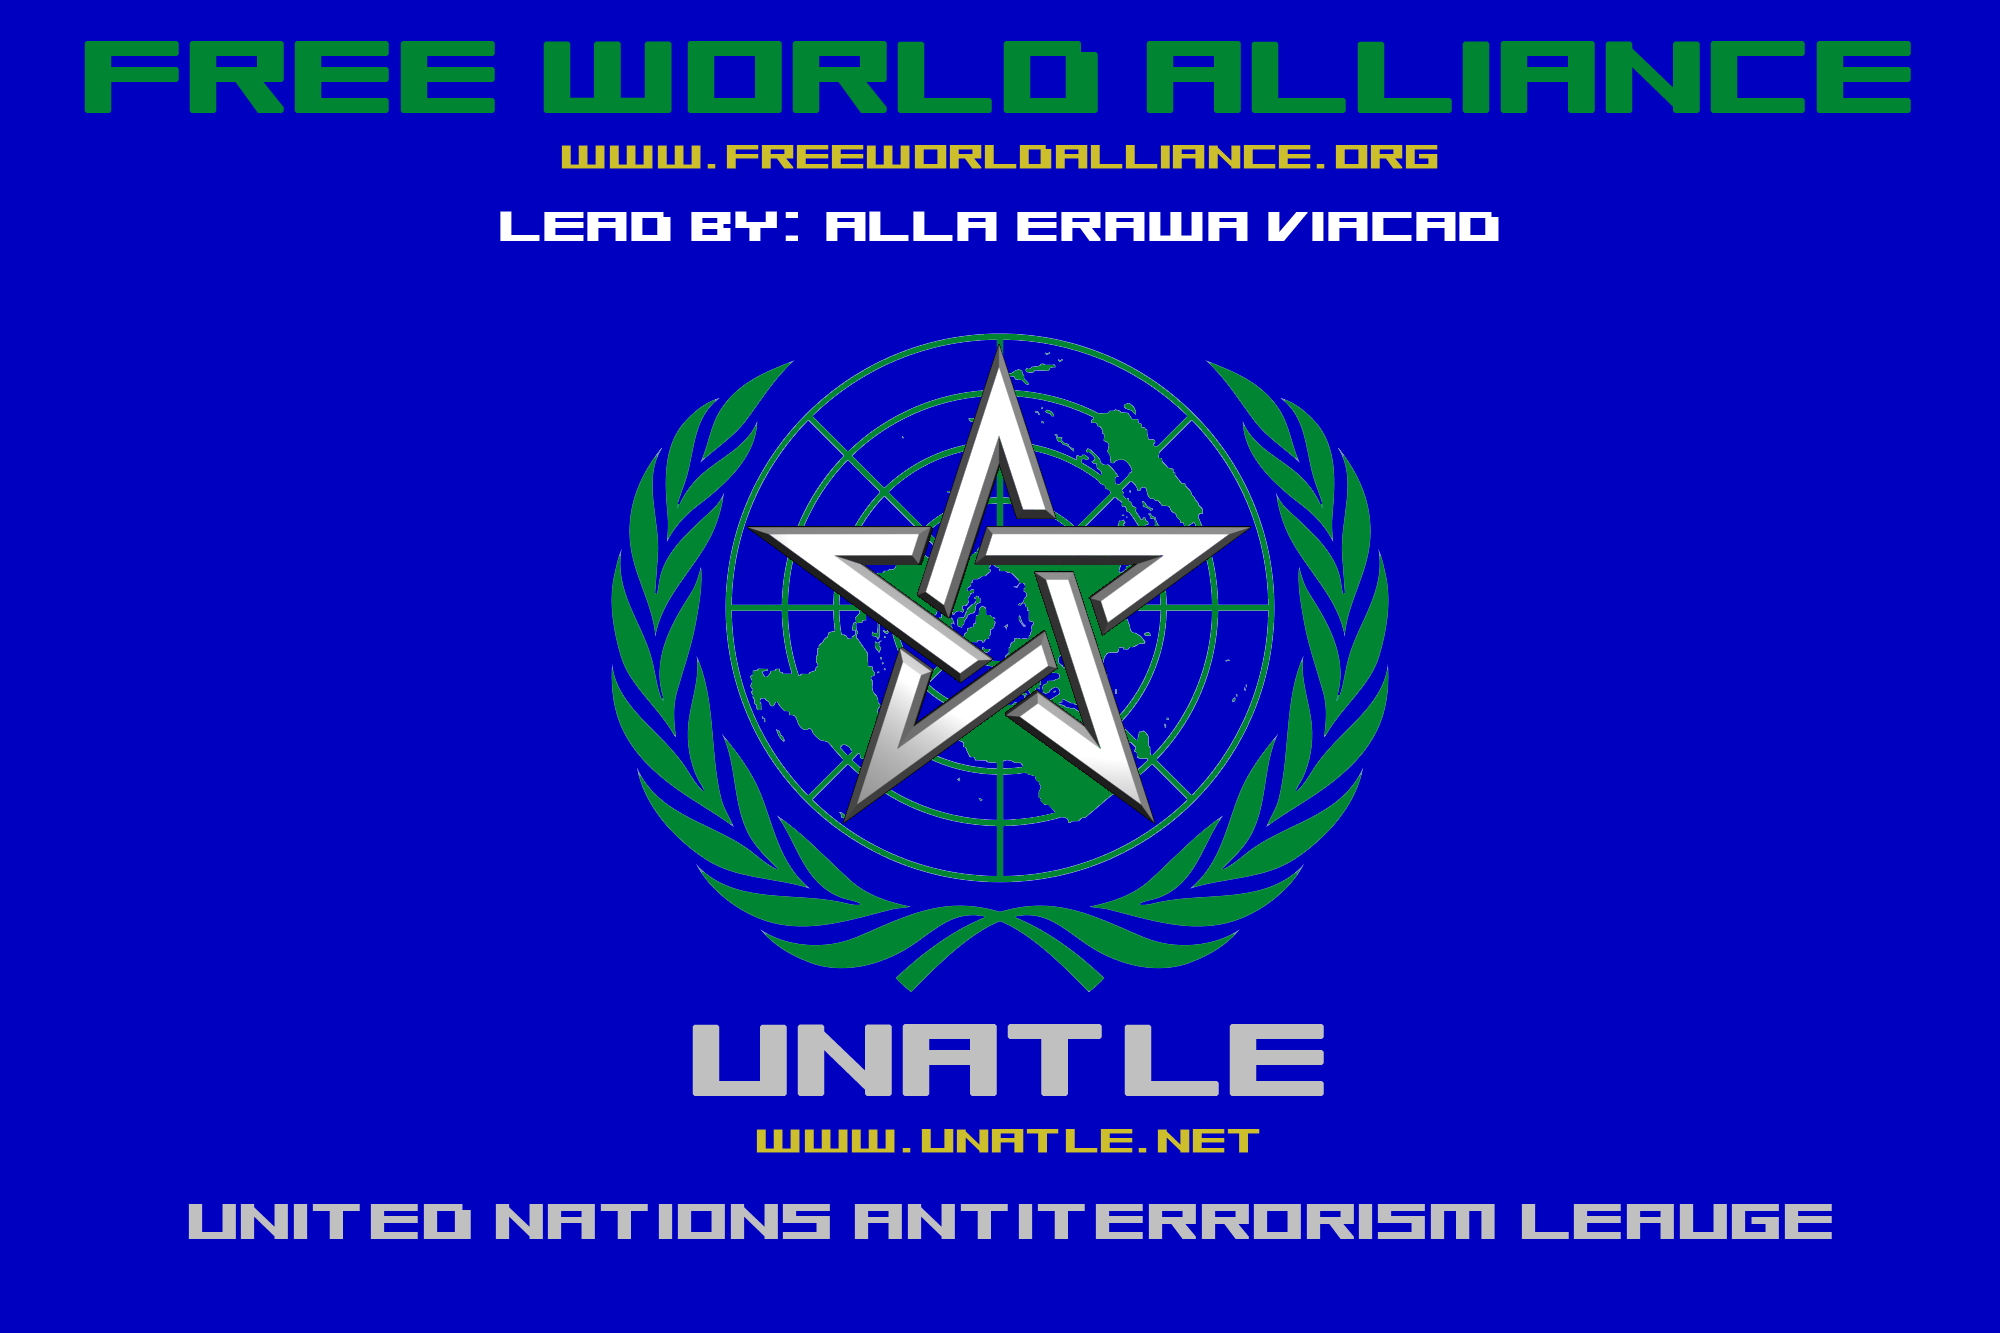 United Nations AntiTerrorism Leauge